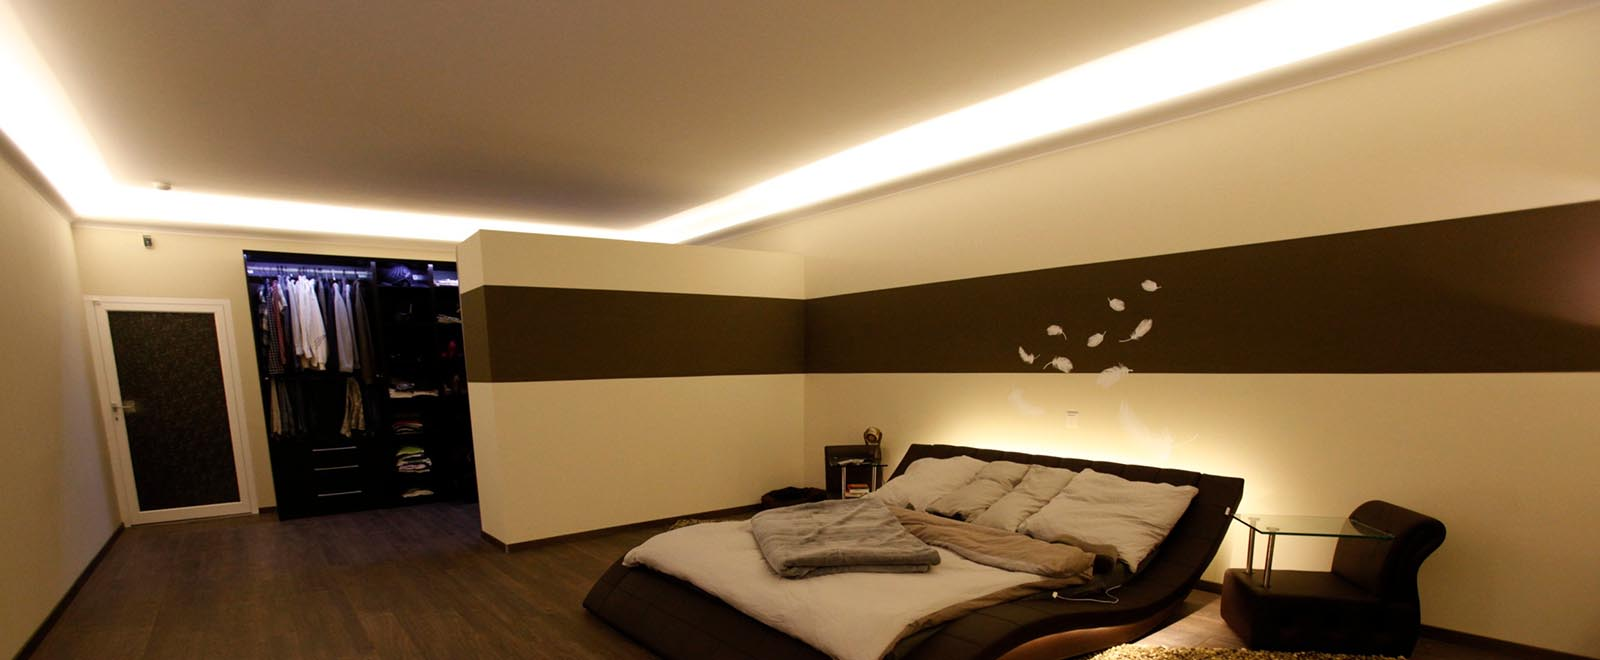 Indirect Lighting In The Bedroom Nice Ideas Bendu